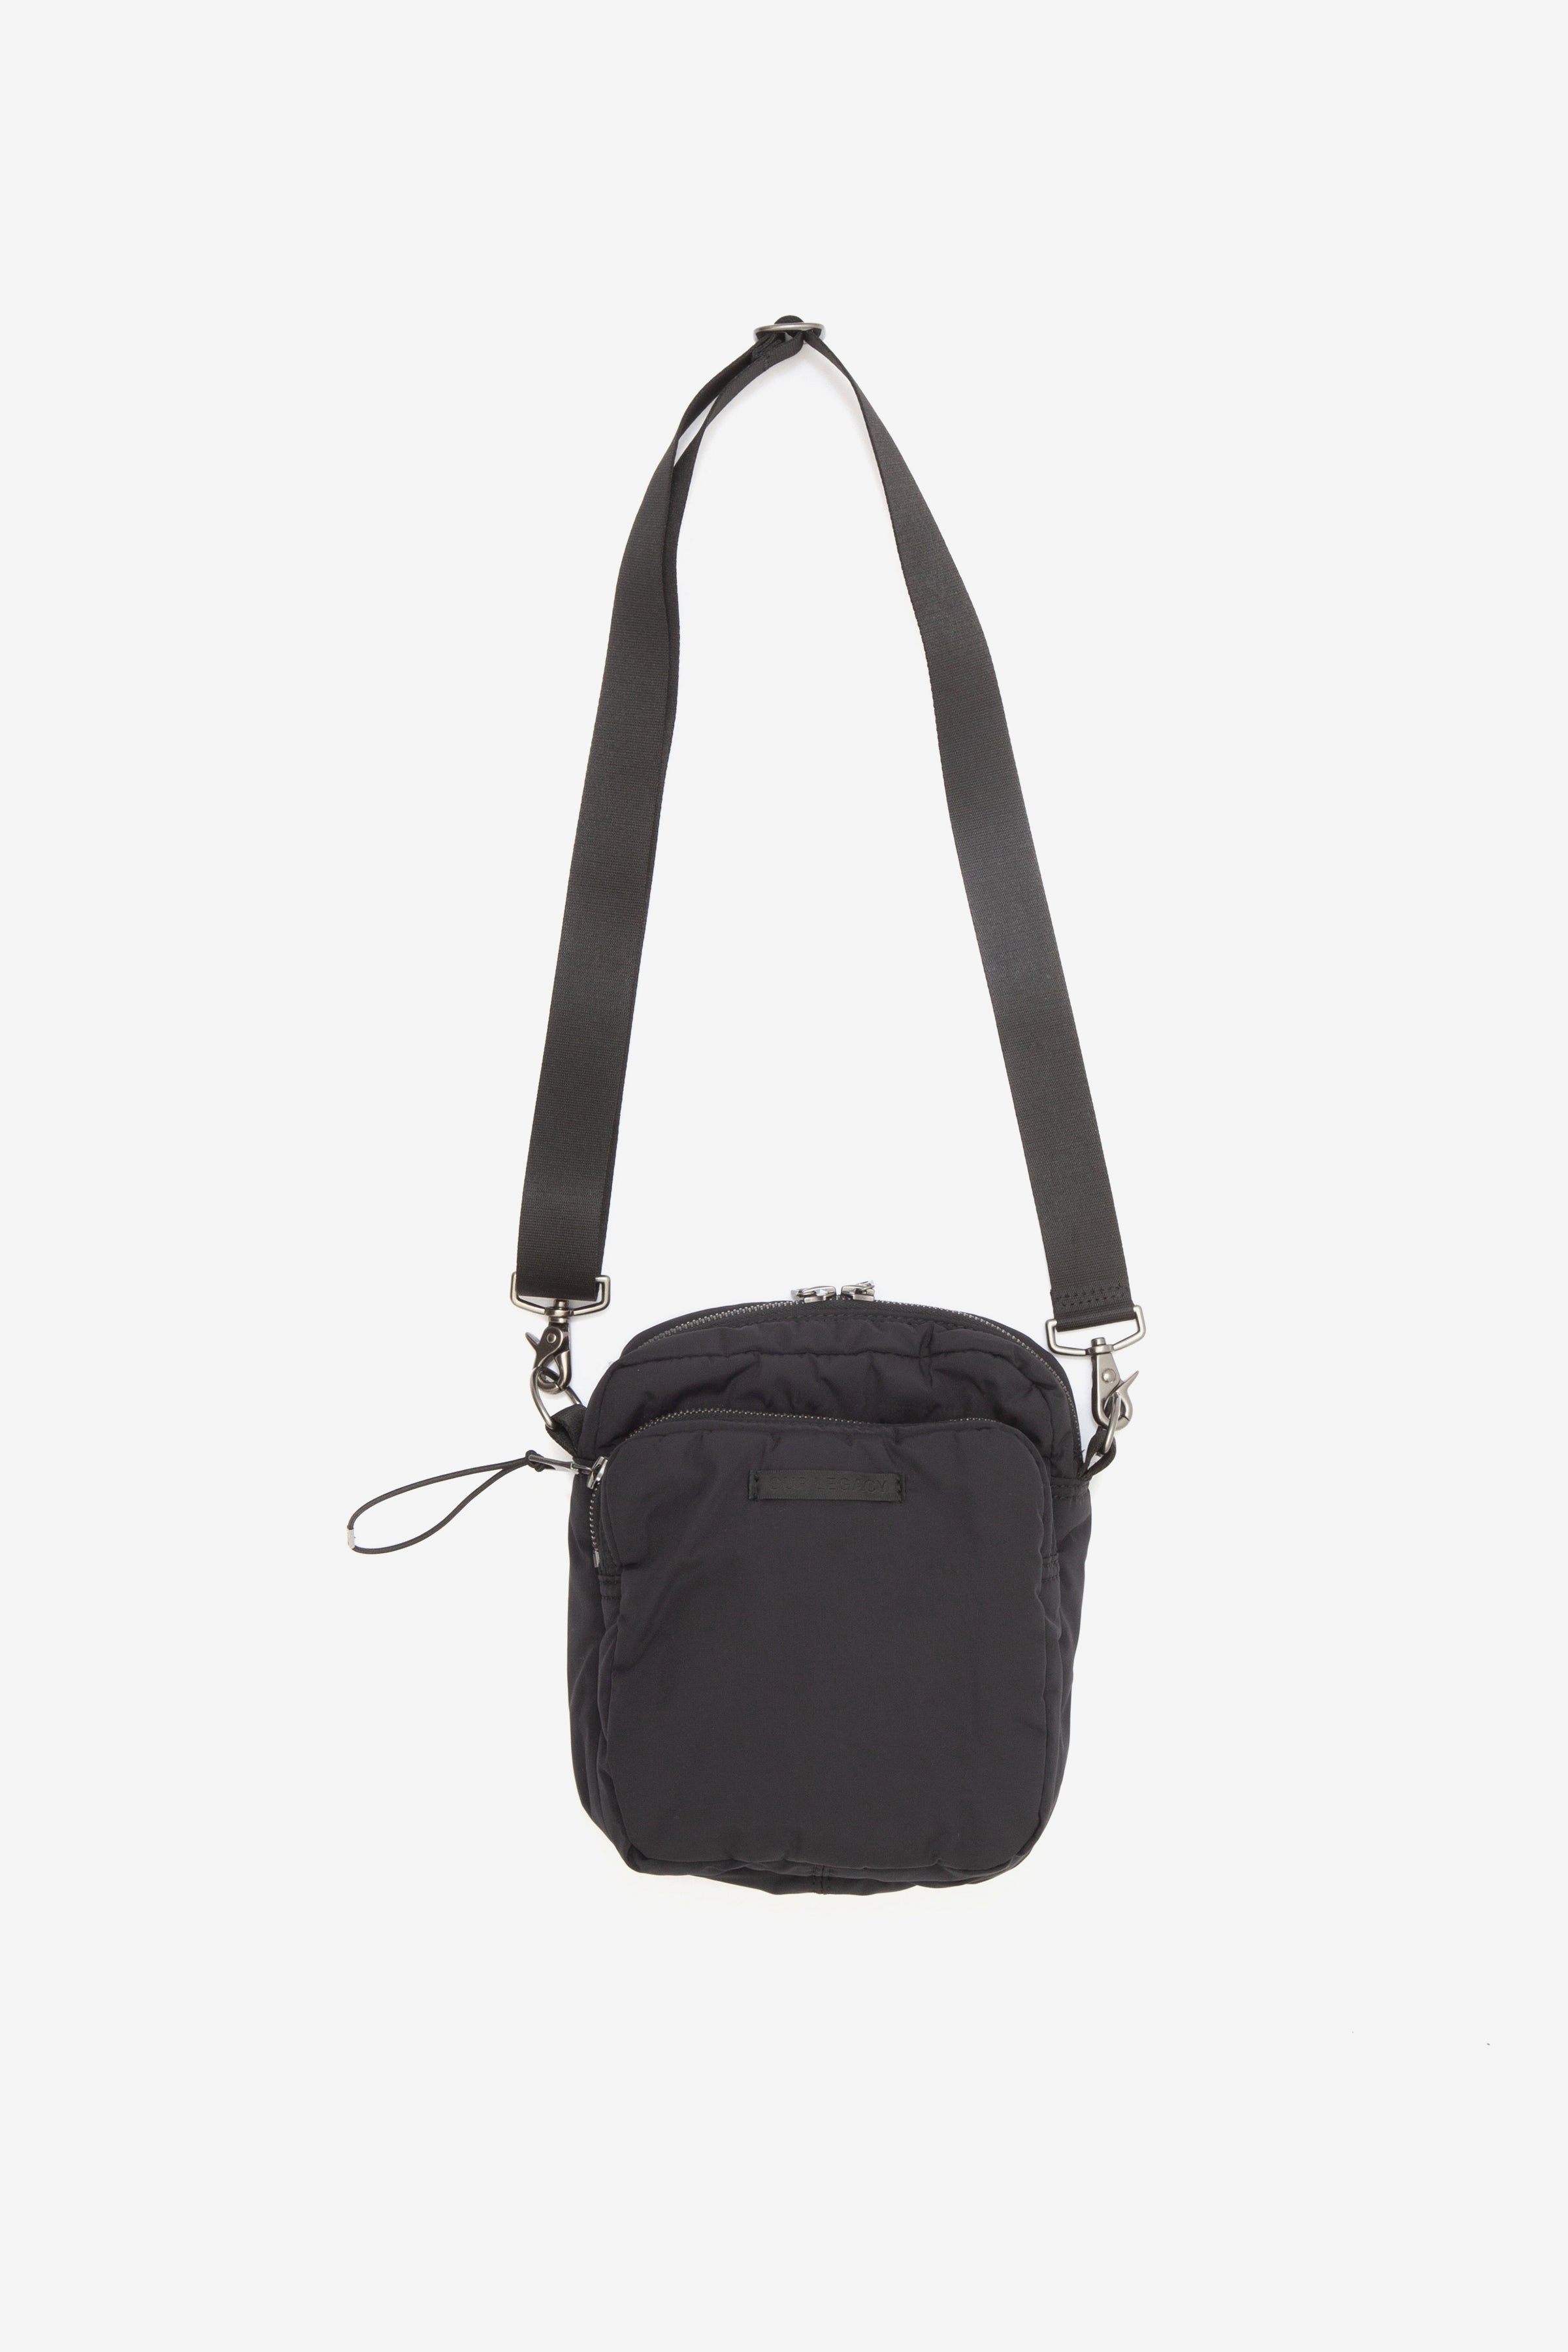 Our Legacy Valve Cross Body Black